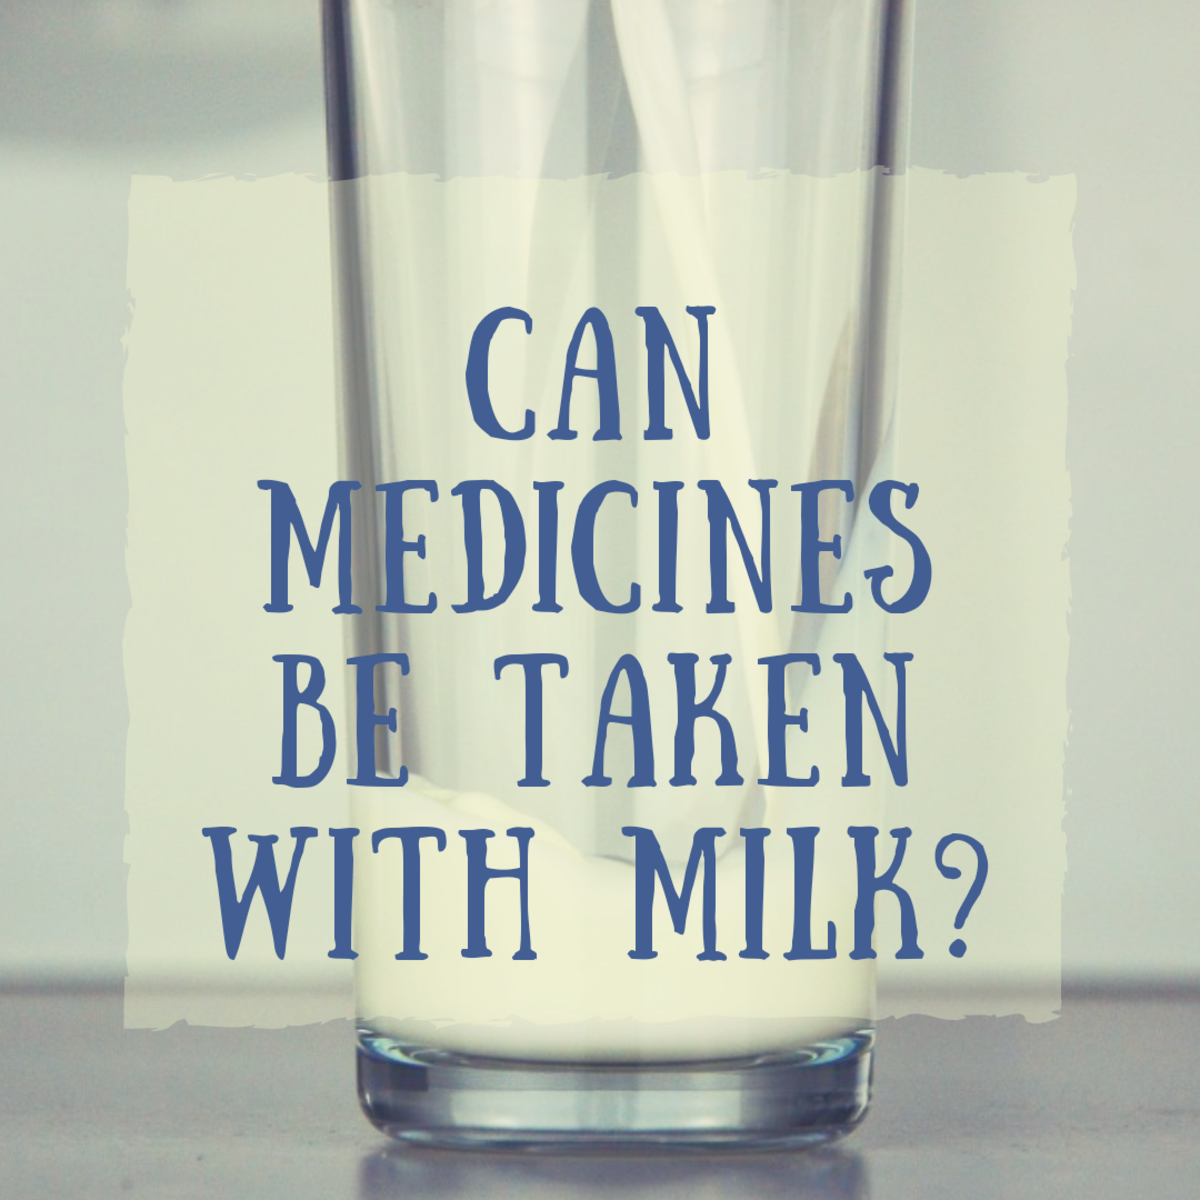 Can Medicines Be Taken With Milk